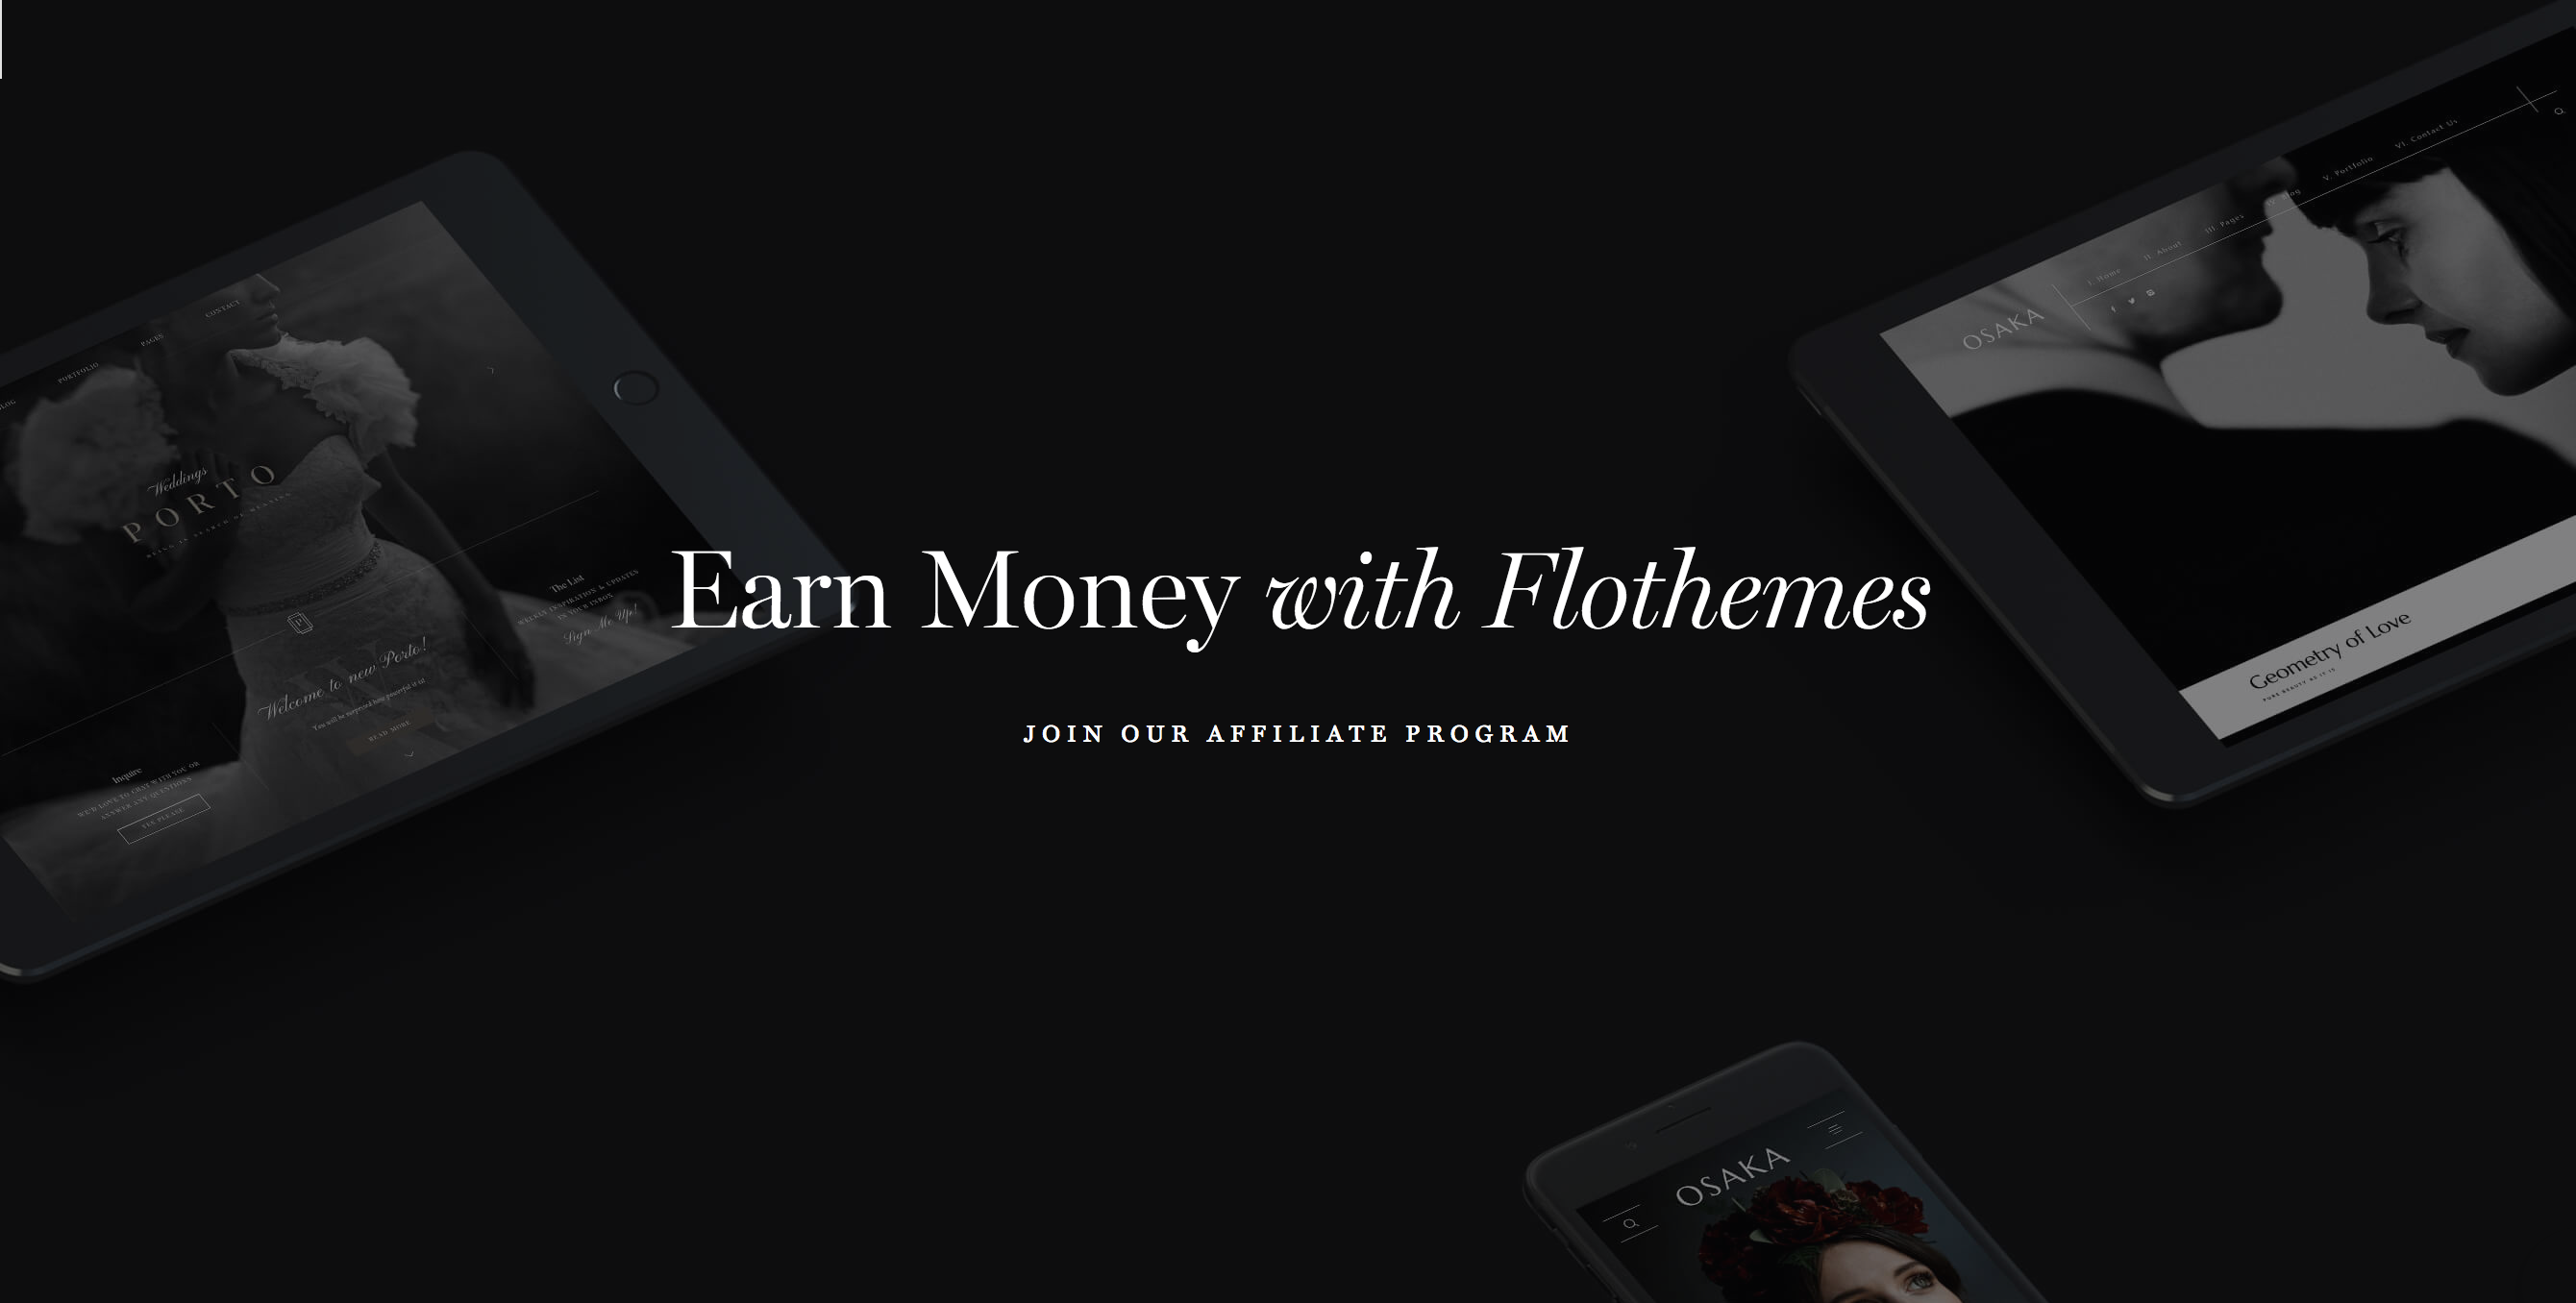 Flothemes - earn money by promoting unique websites for photographers